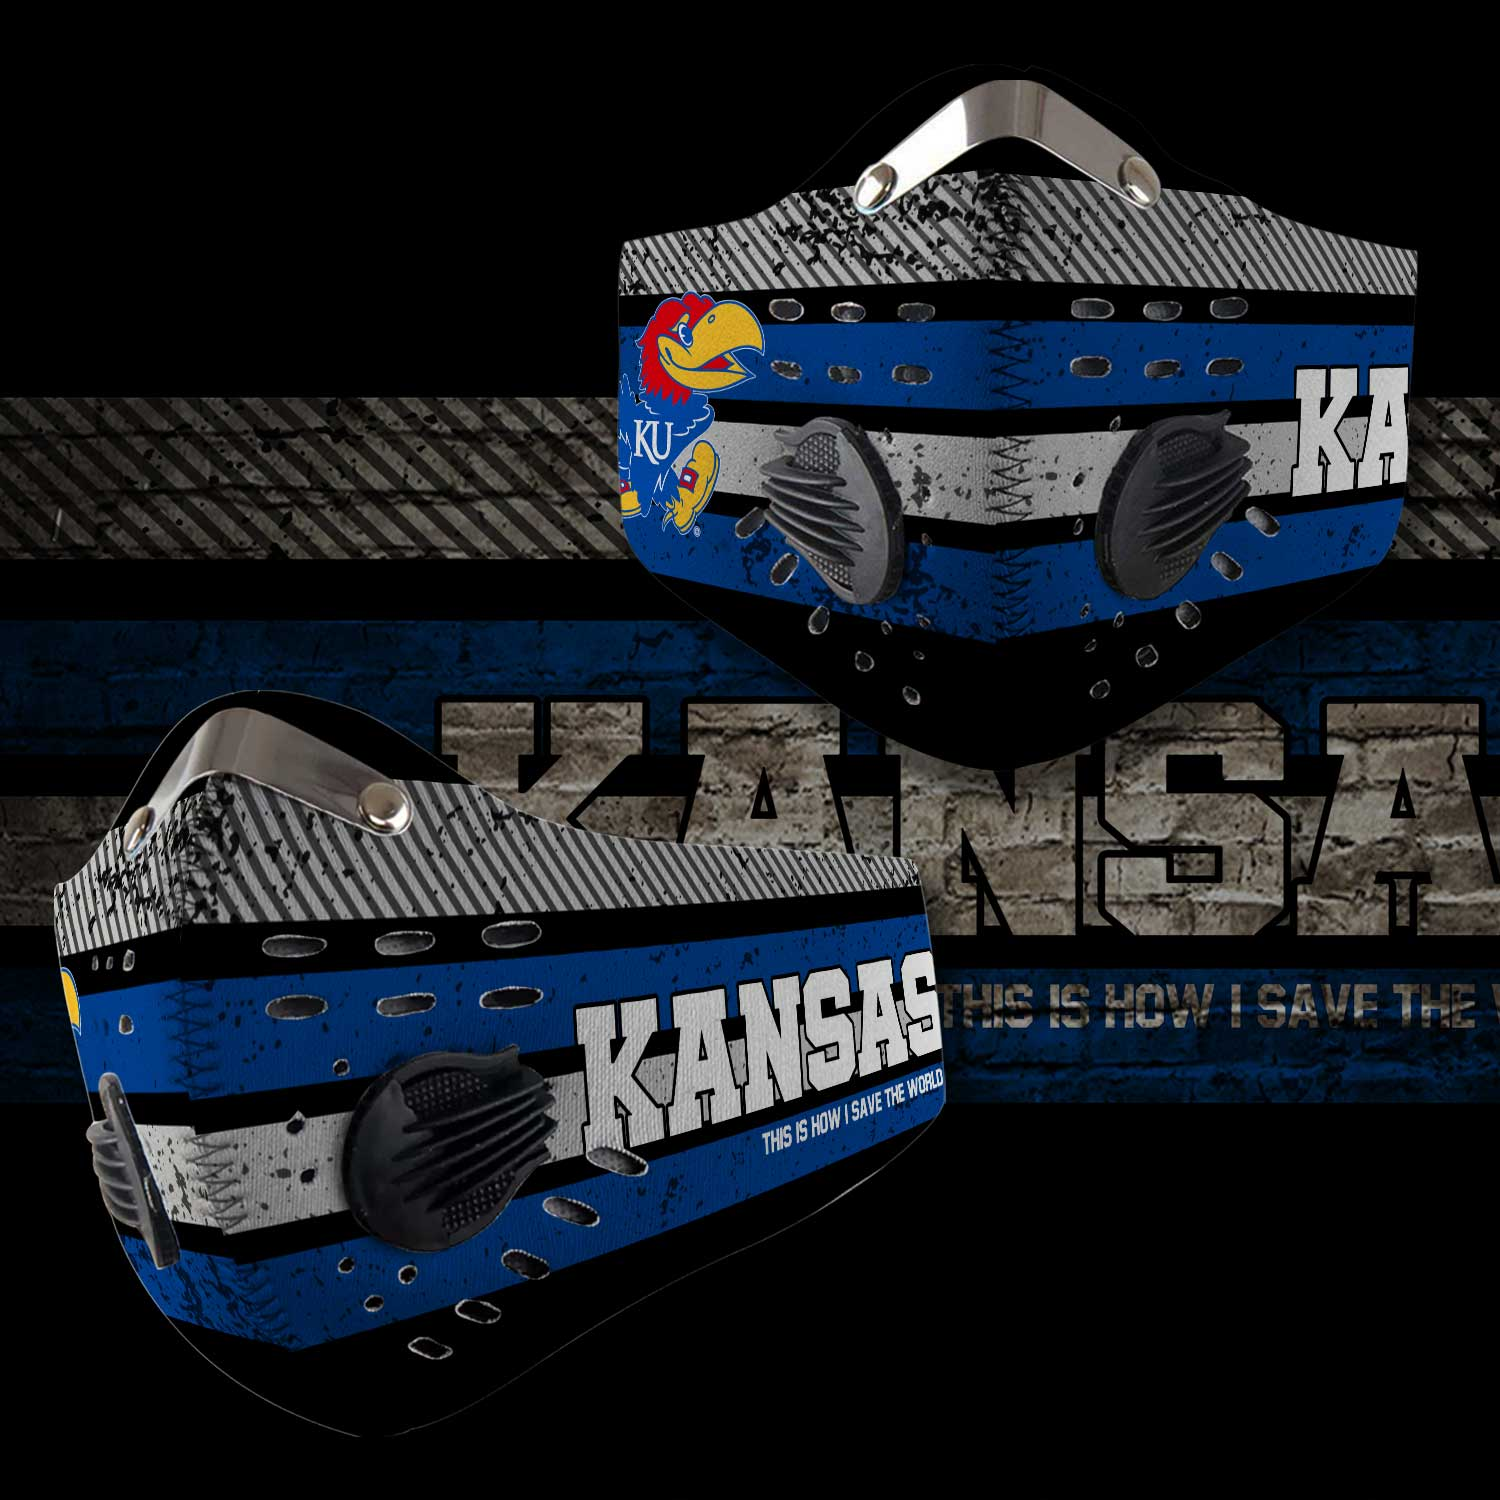 Kansas jayhawks men's basketball this is how i save the world face mask 1